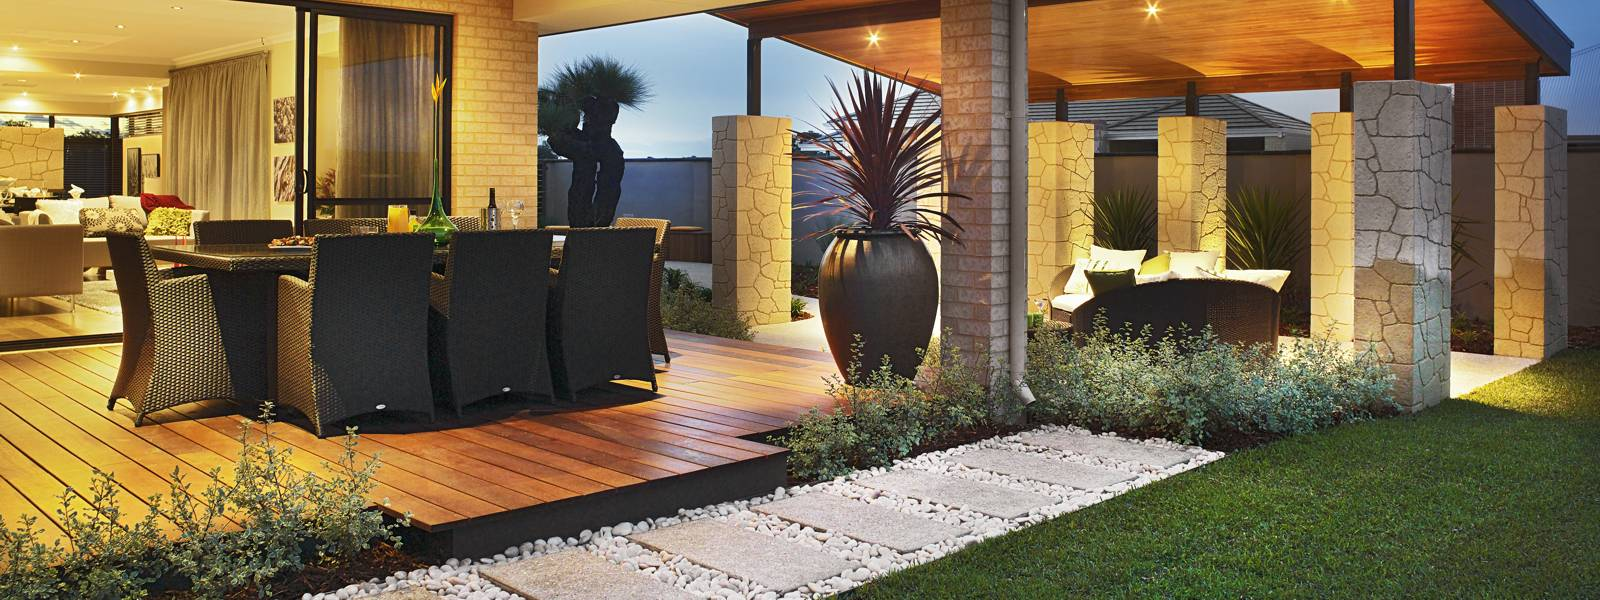 Landscaping perth professional garden landscapers for Garden design landscaping company